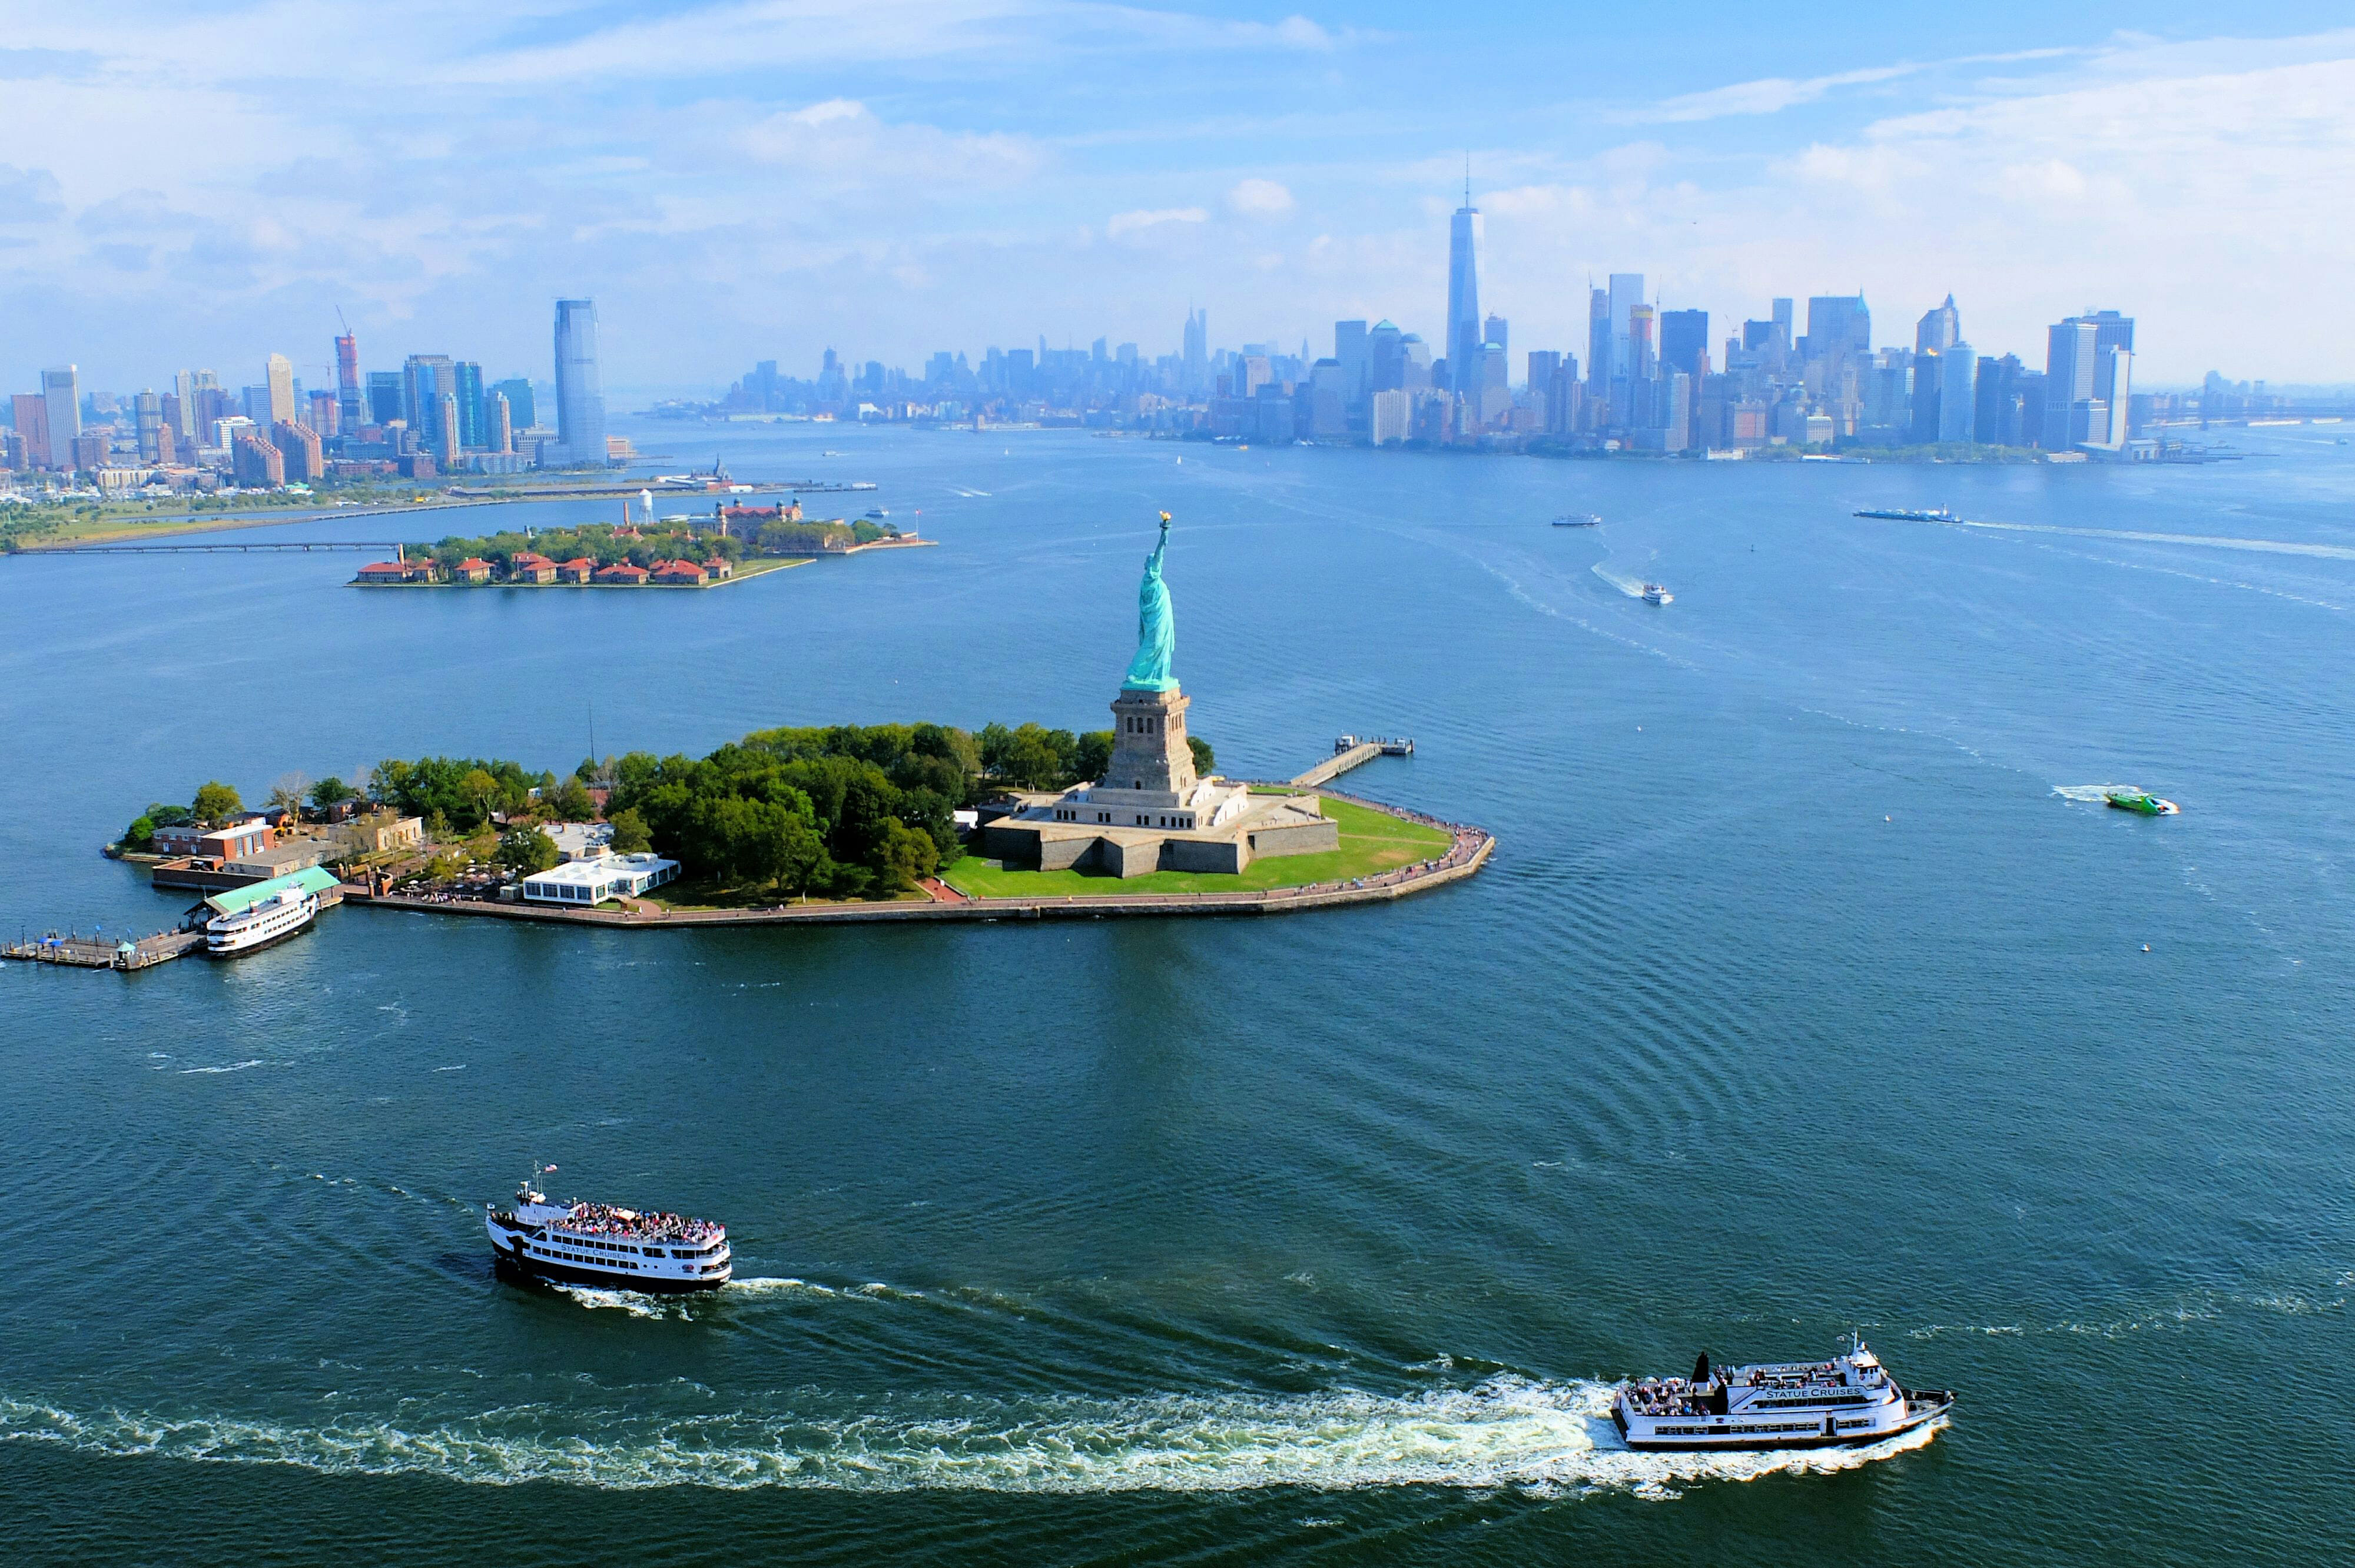 Helicopter Tour New York Skyline High Quality Wallpaper